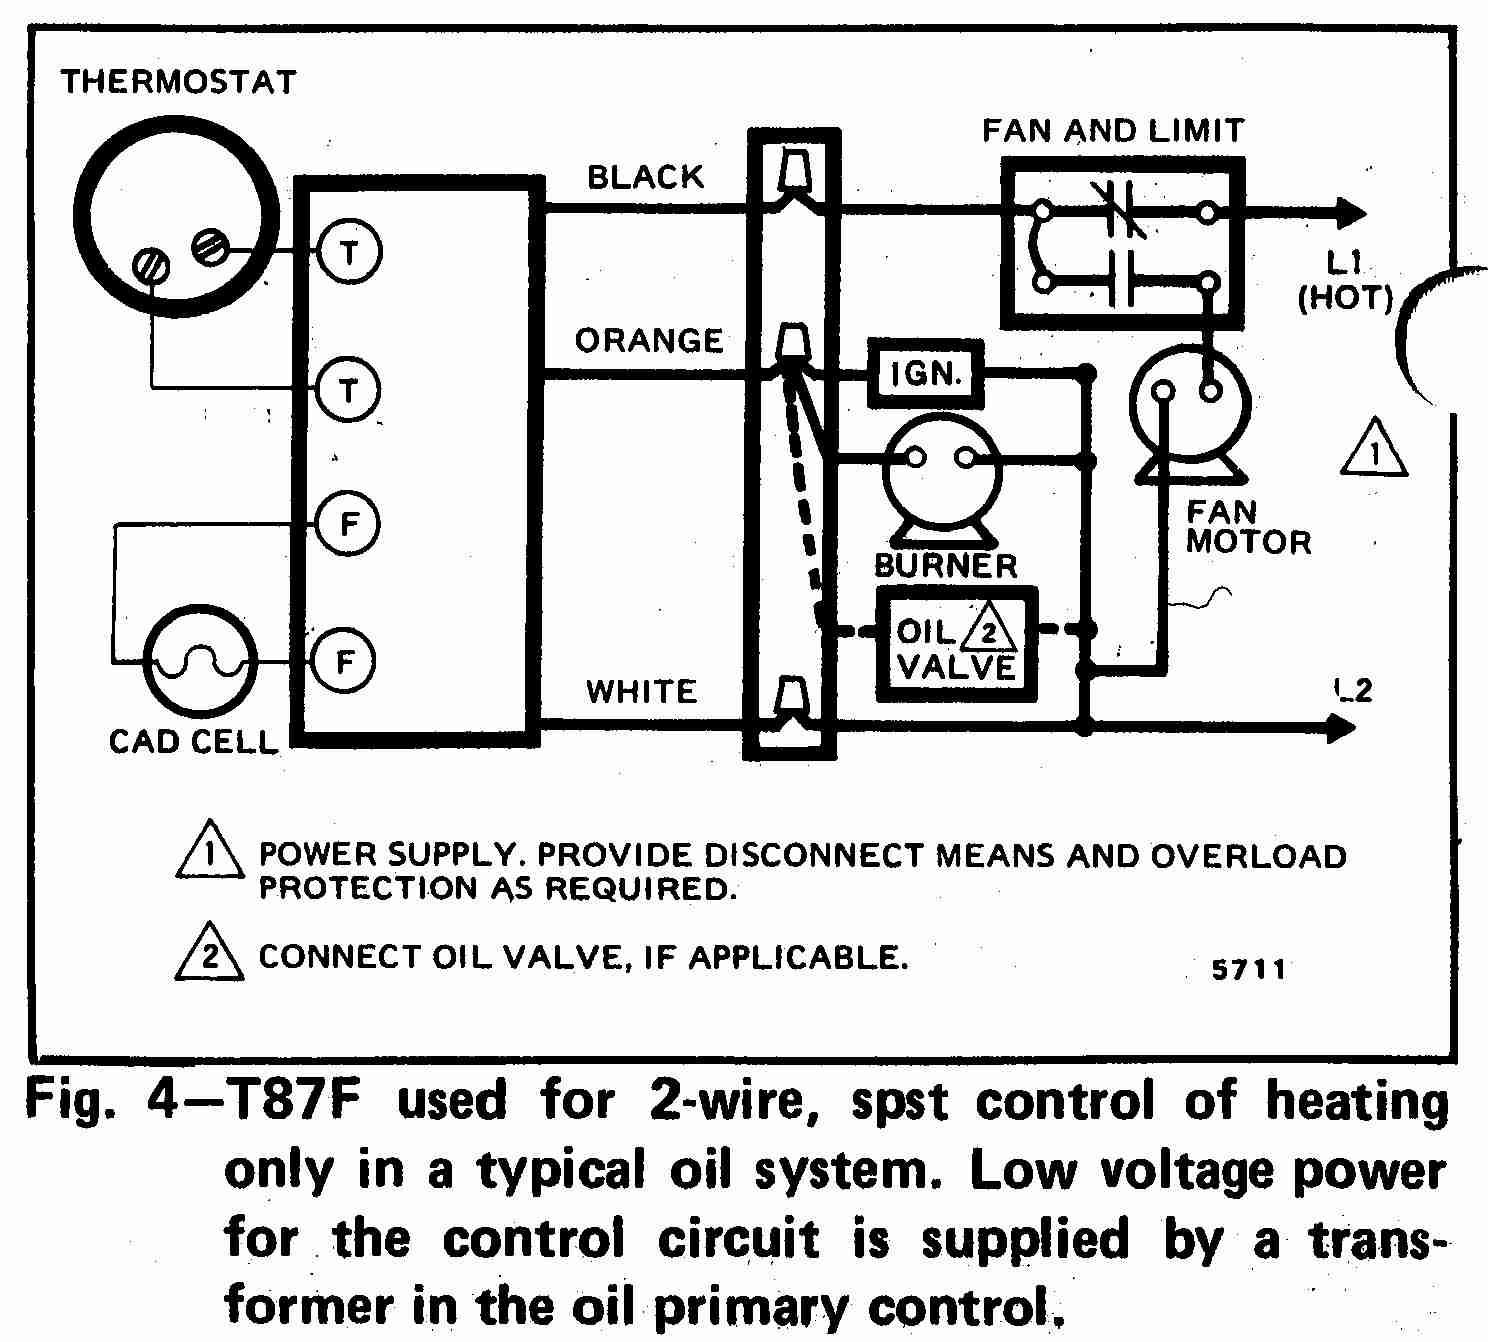 hight resolution of room thermostat wiring diagrams for hvac systems rh inspectapedia com coleman evcon circuit board diagram evcon condensing unit wiring diagram